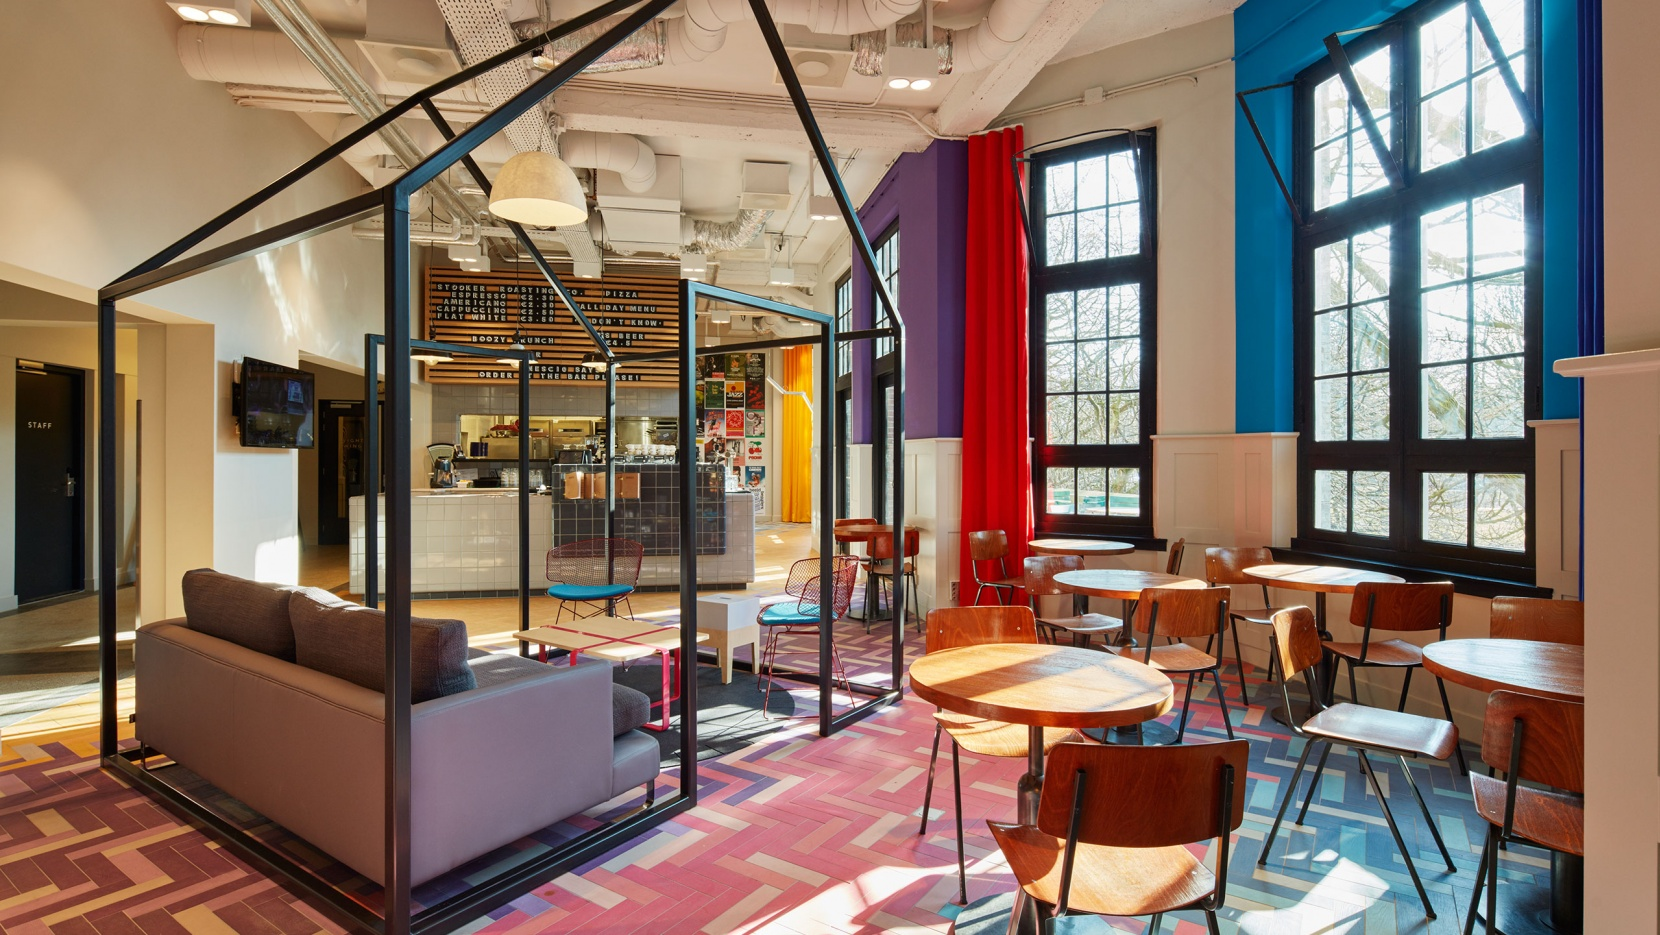 Generator hostel amsterdam brings dutch art to oosterpark yatzer for Interior design name generator